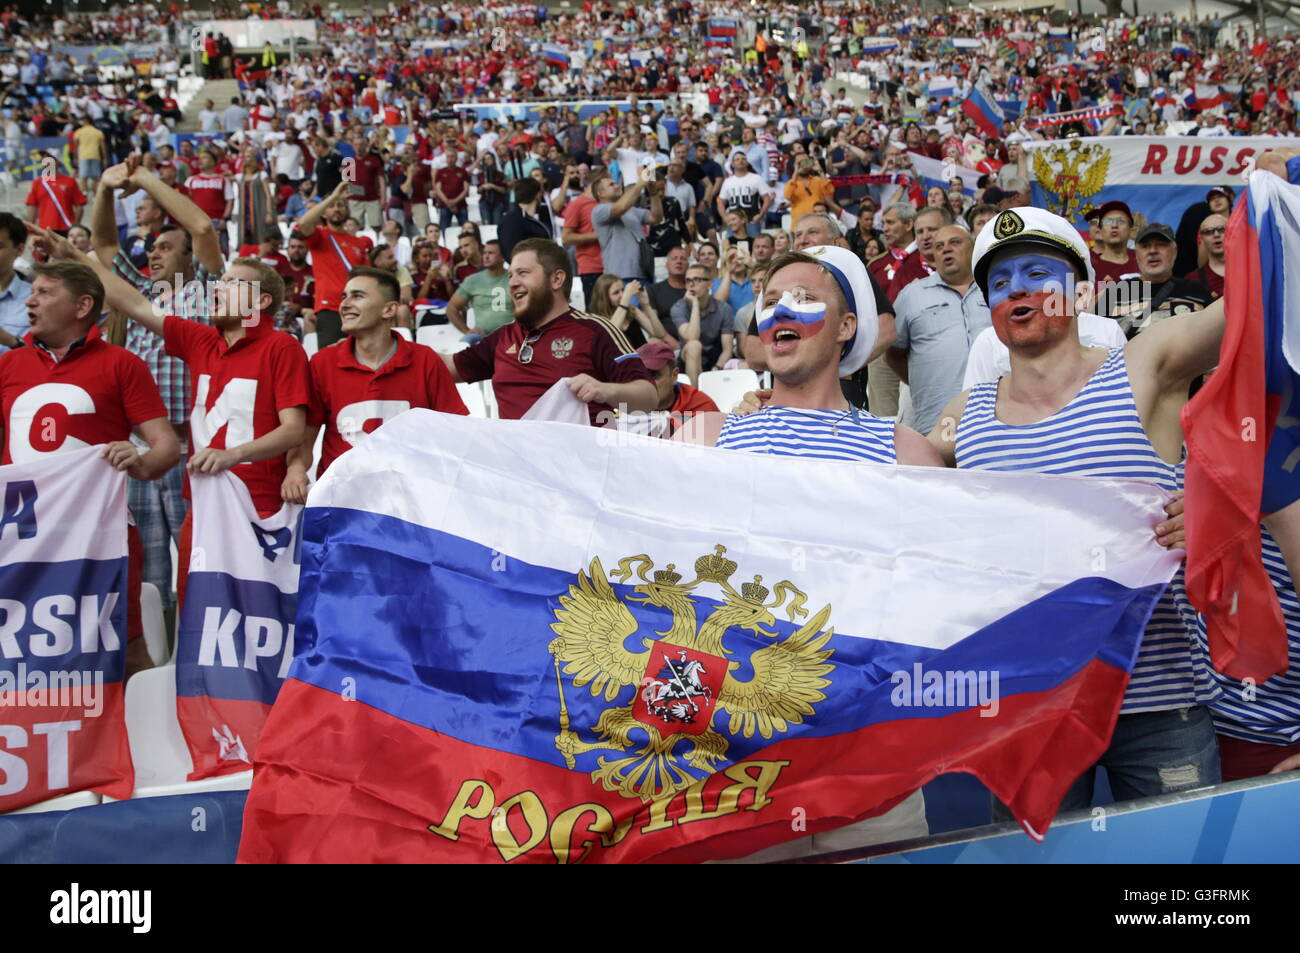 MARSEILLE, FRANCE - JUNE 11, 2016: Russian fans seen ahead of the 2016 UEFA European Championship Group B football - Stock Image